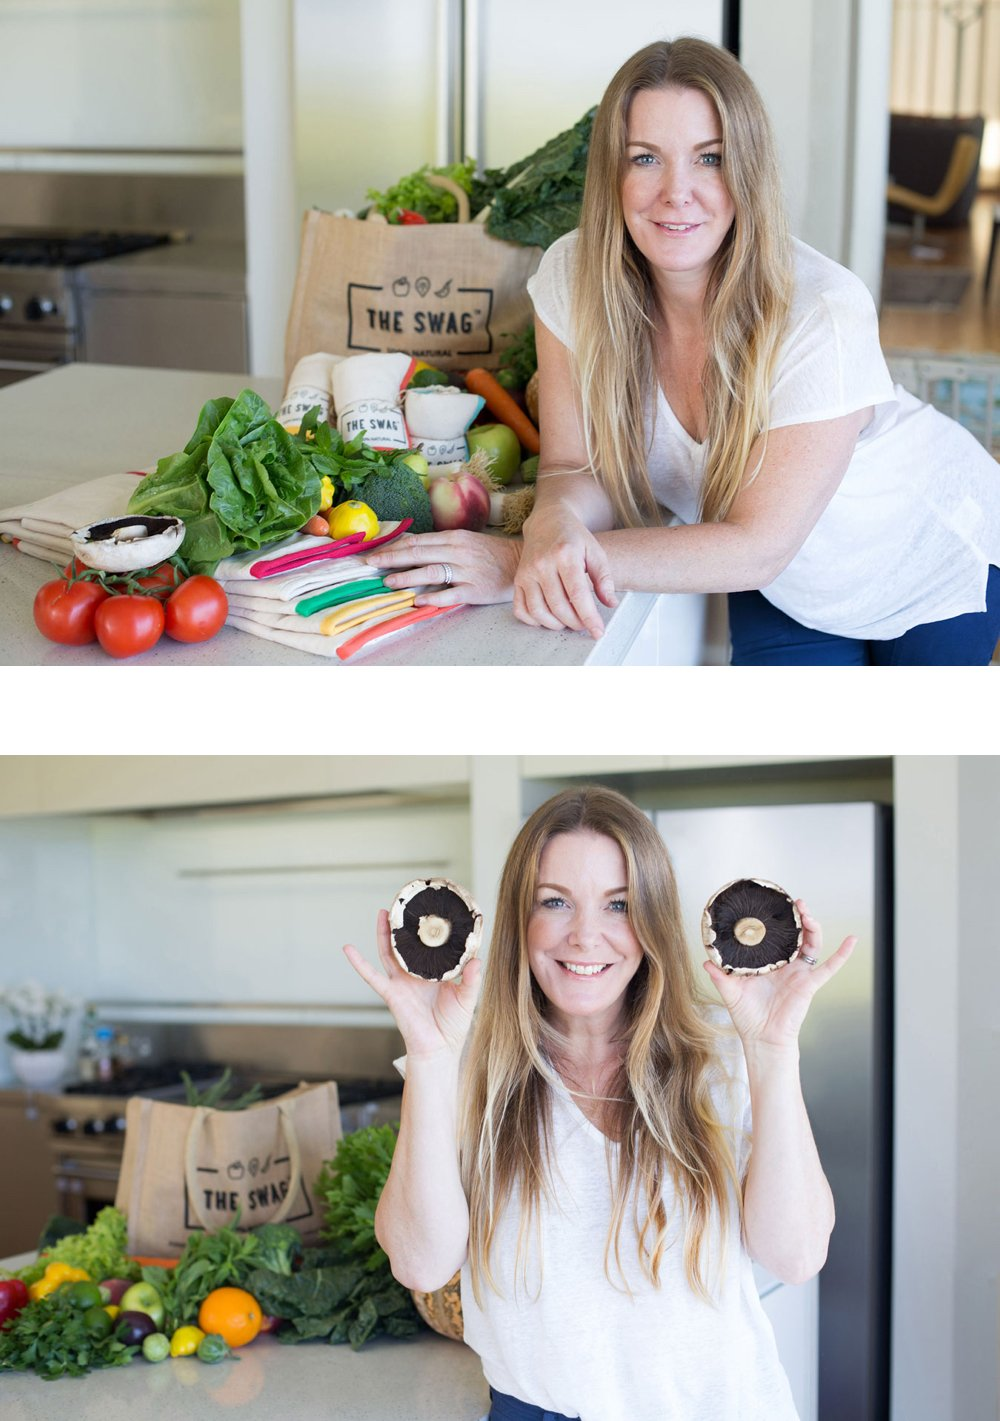 The Swag - Reusable Produce Bags for Vegetables and Fruits